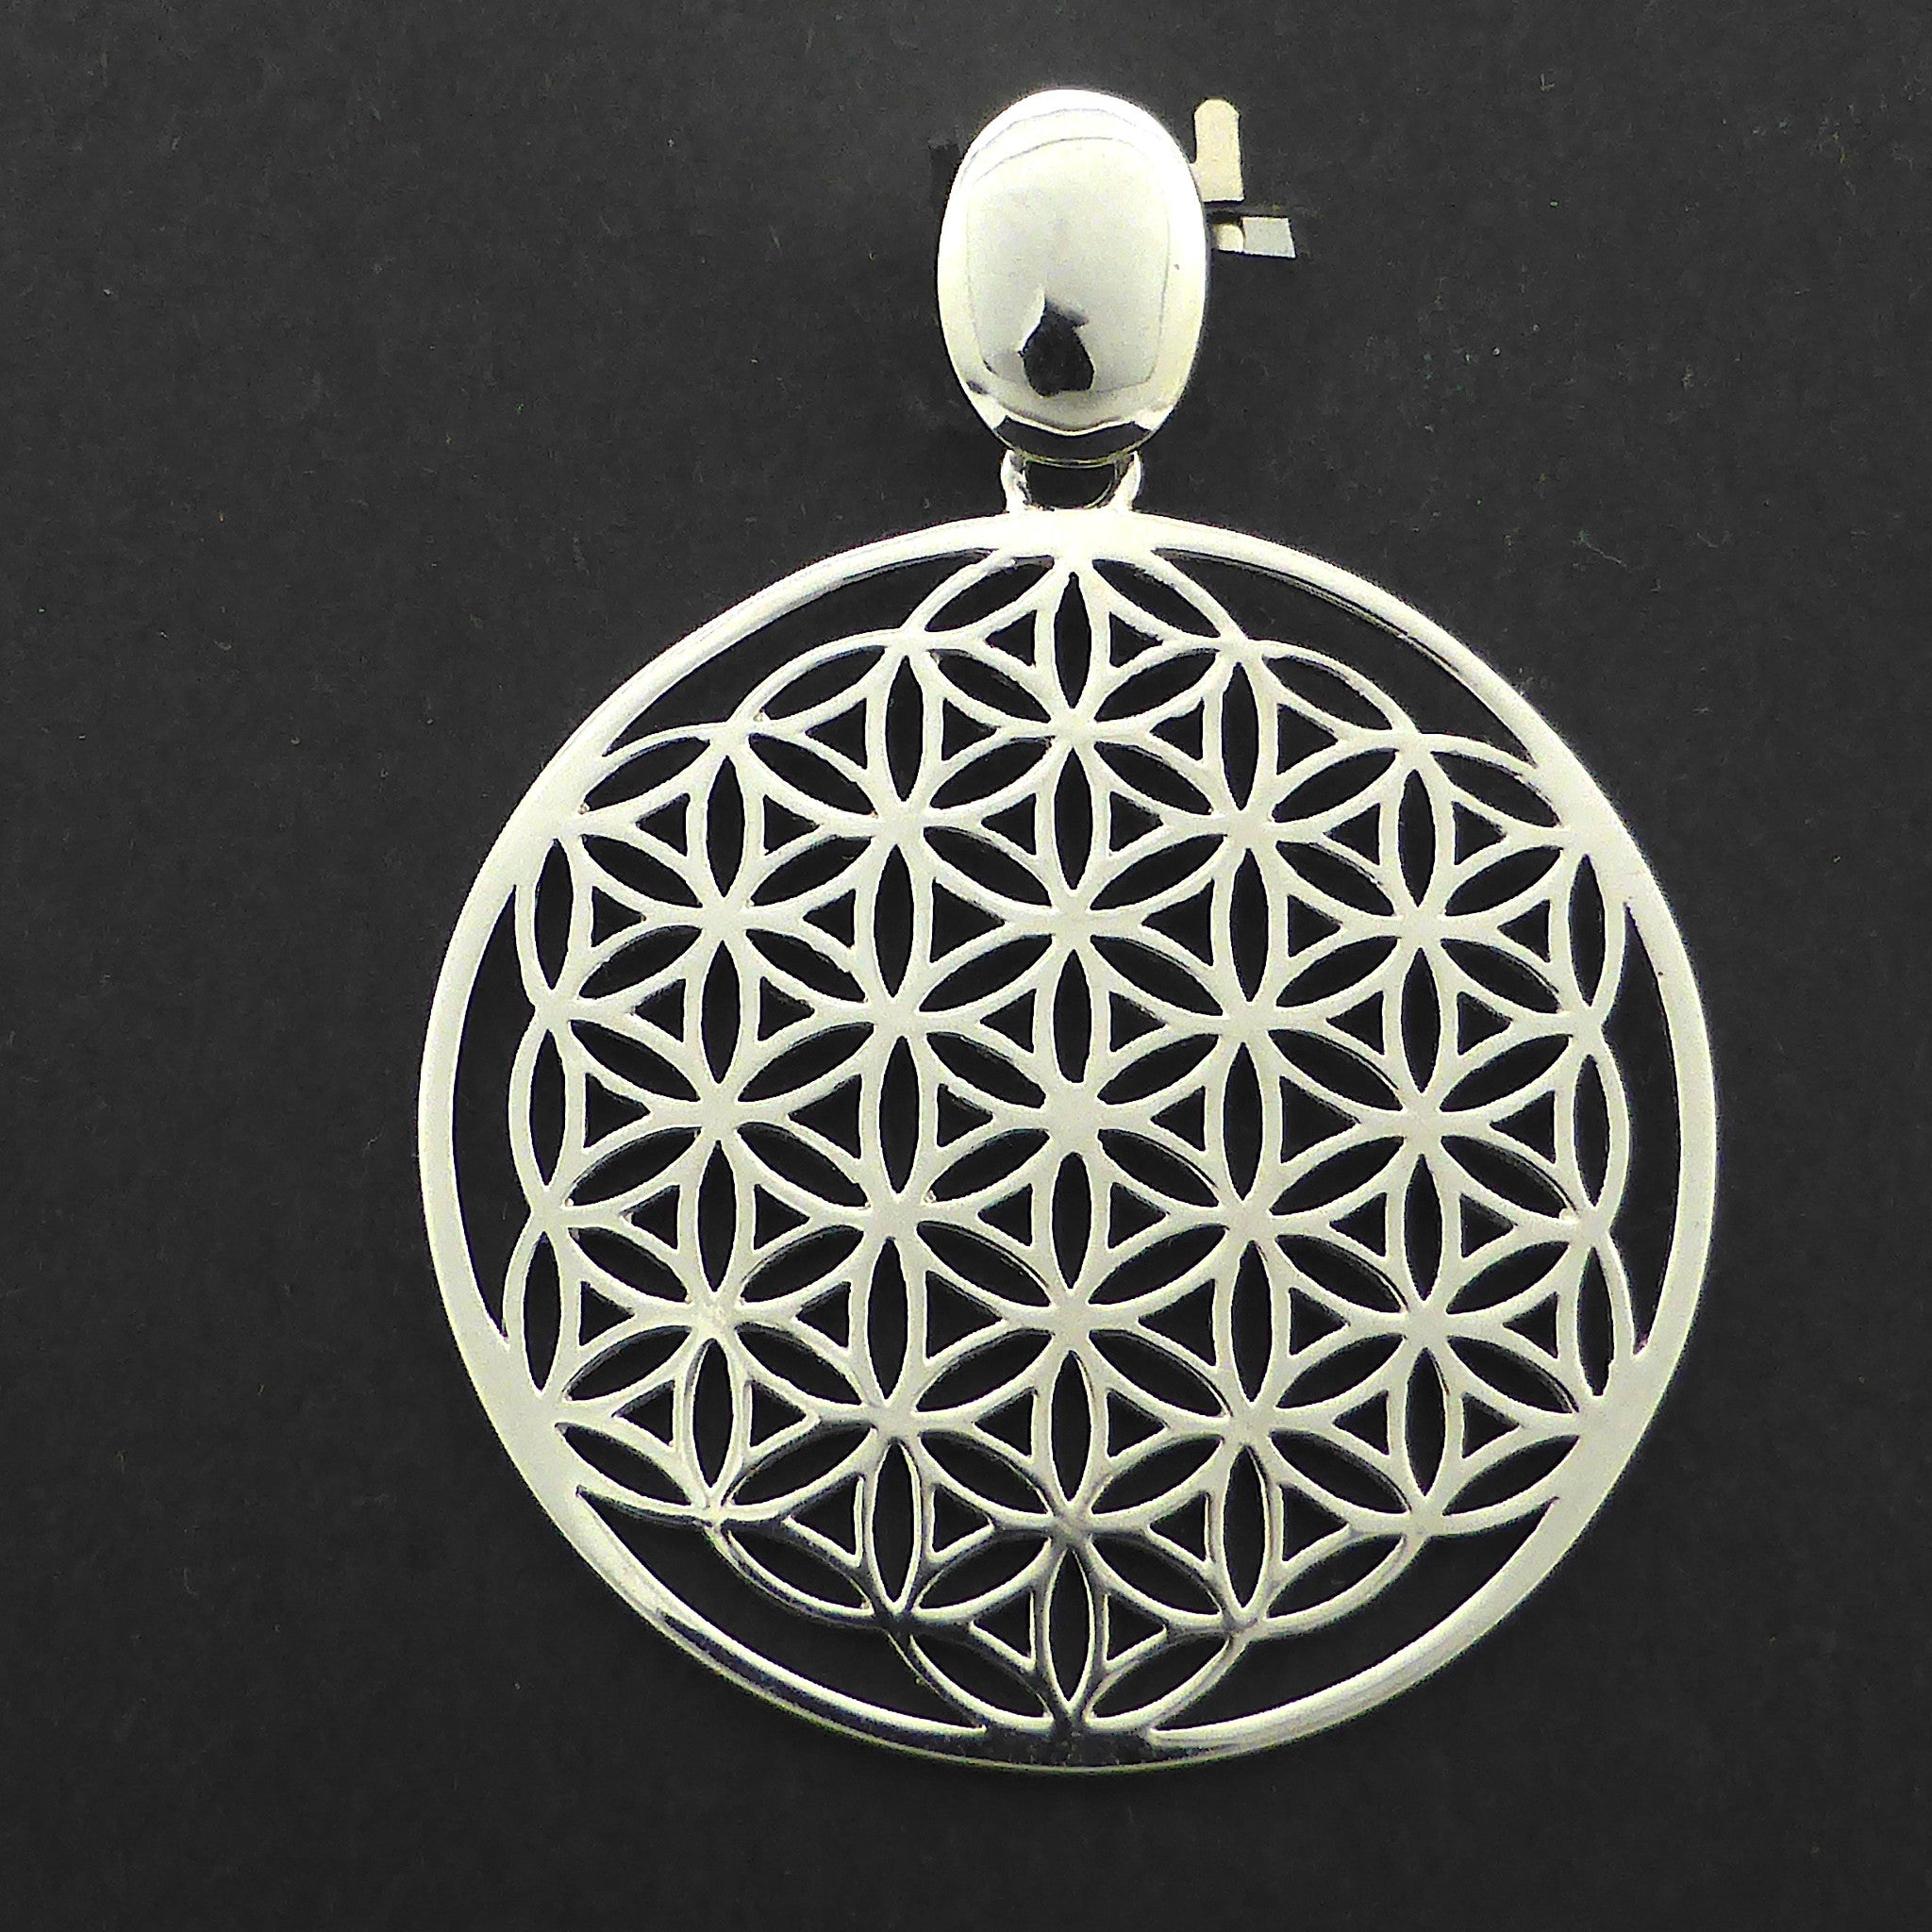 Flower of life pendant 925 sterling silver crystal heart flower of life pendant 925 sterling silver unite male female god and goddess mozeypictures Gallery